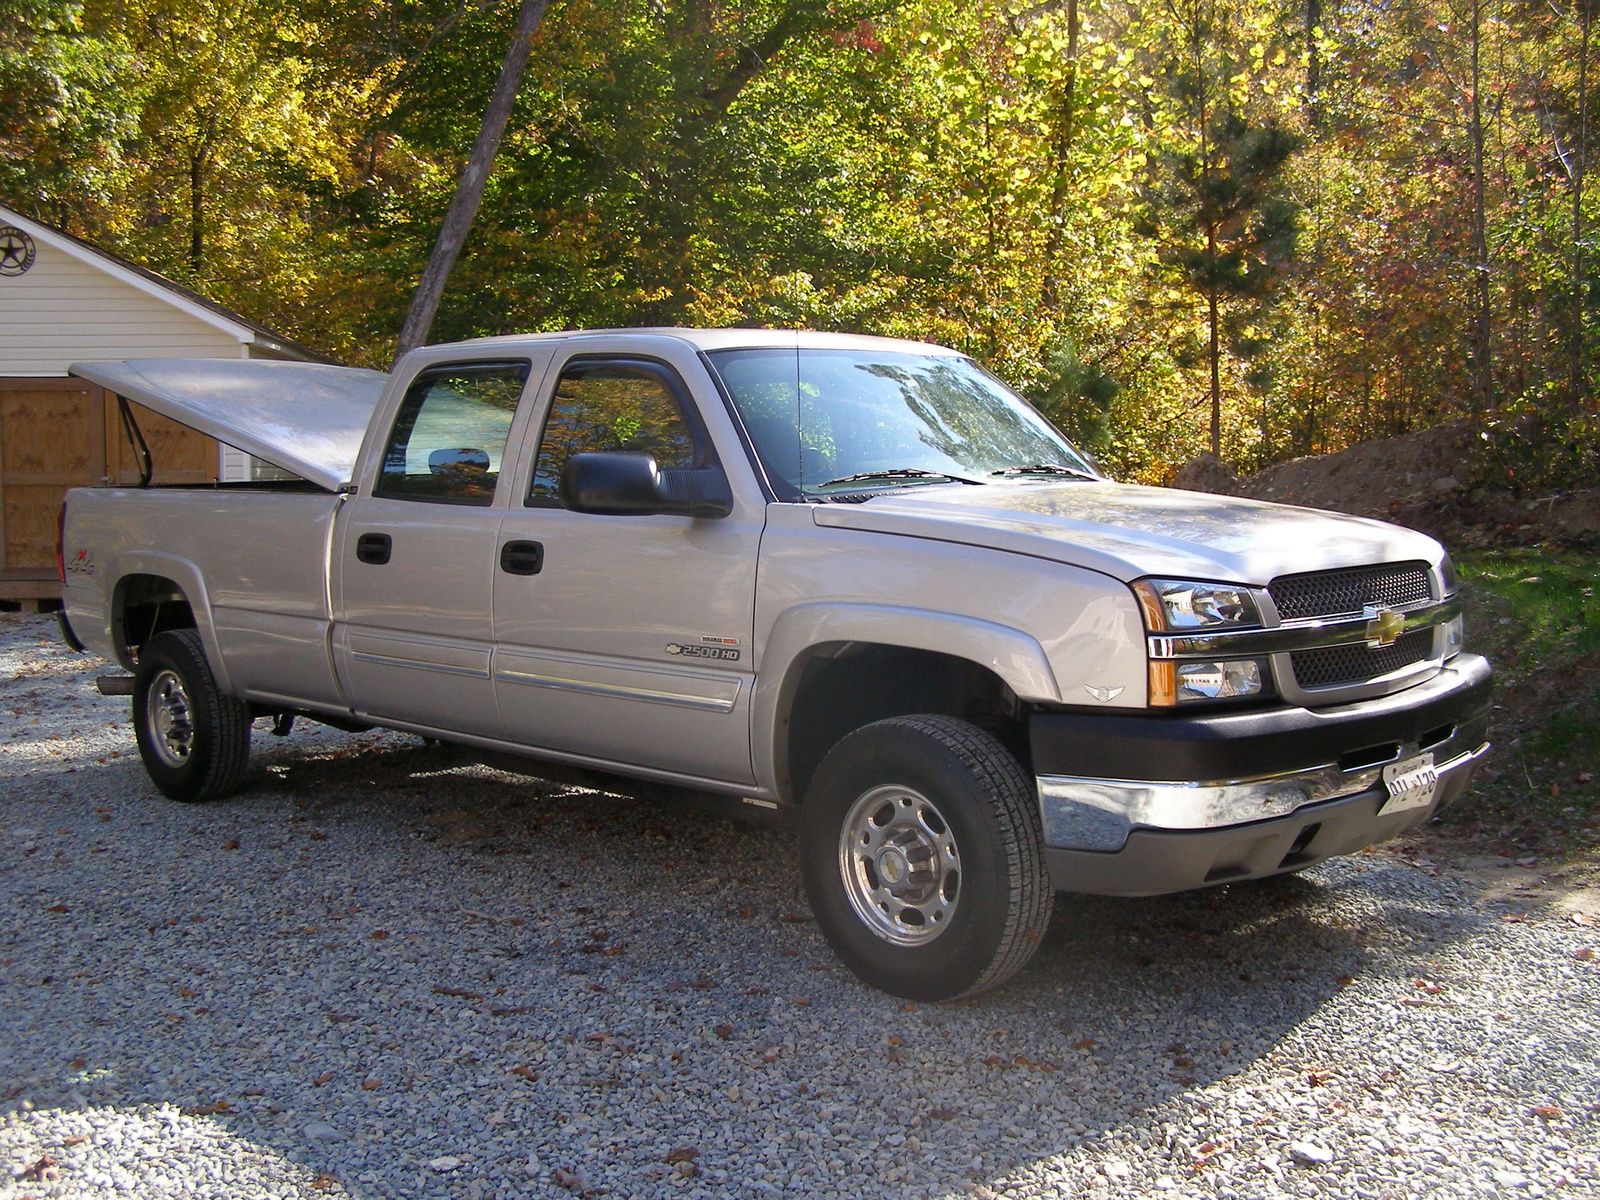 2004 chevrolet silverado 2500hd 4 dr ls 4wd crew cab lb hd picture. Cars Review. Best American Auto & Cars Review